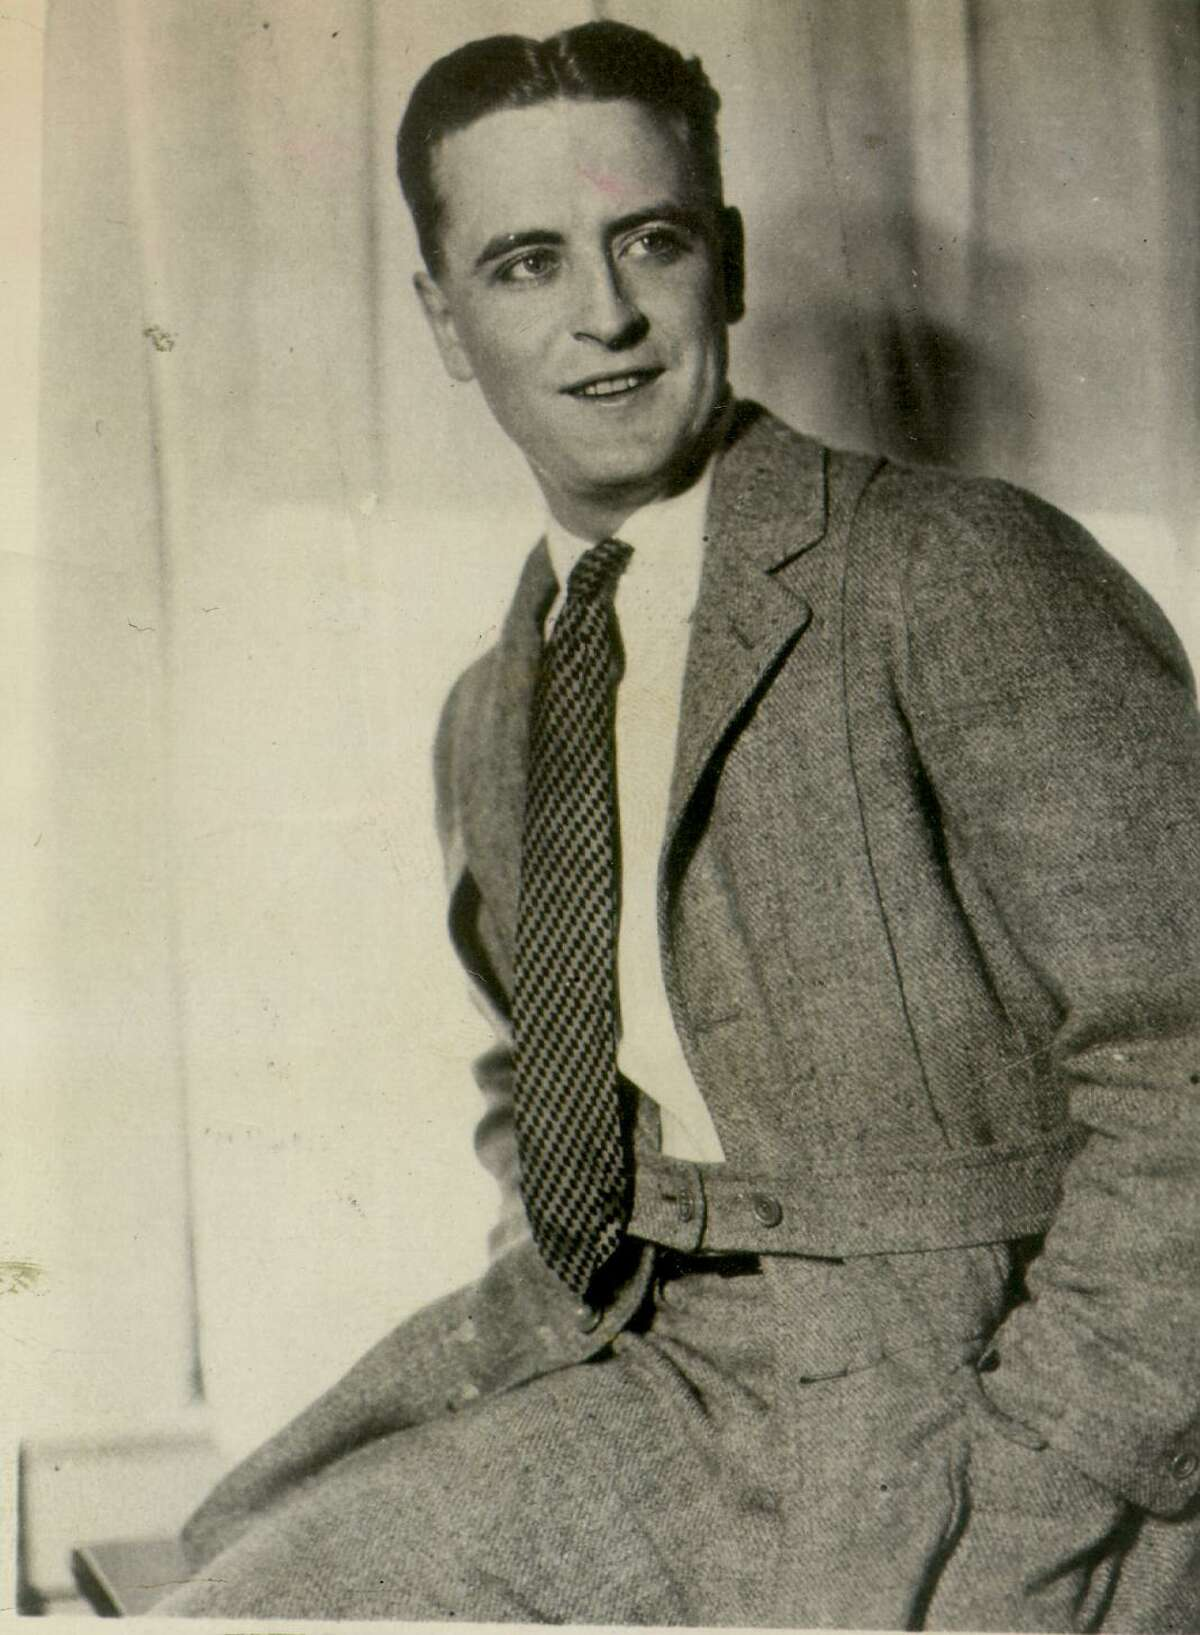 Writer F. Scott Fitzgerald is shown in this undated file photo. Fitzgerald was born in St. Paul, Minnesota, on Sept. 24, 1896.